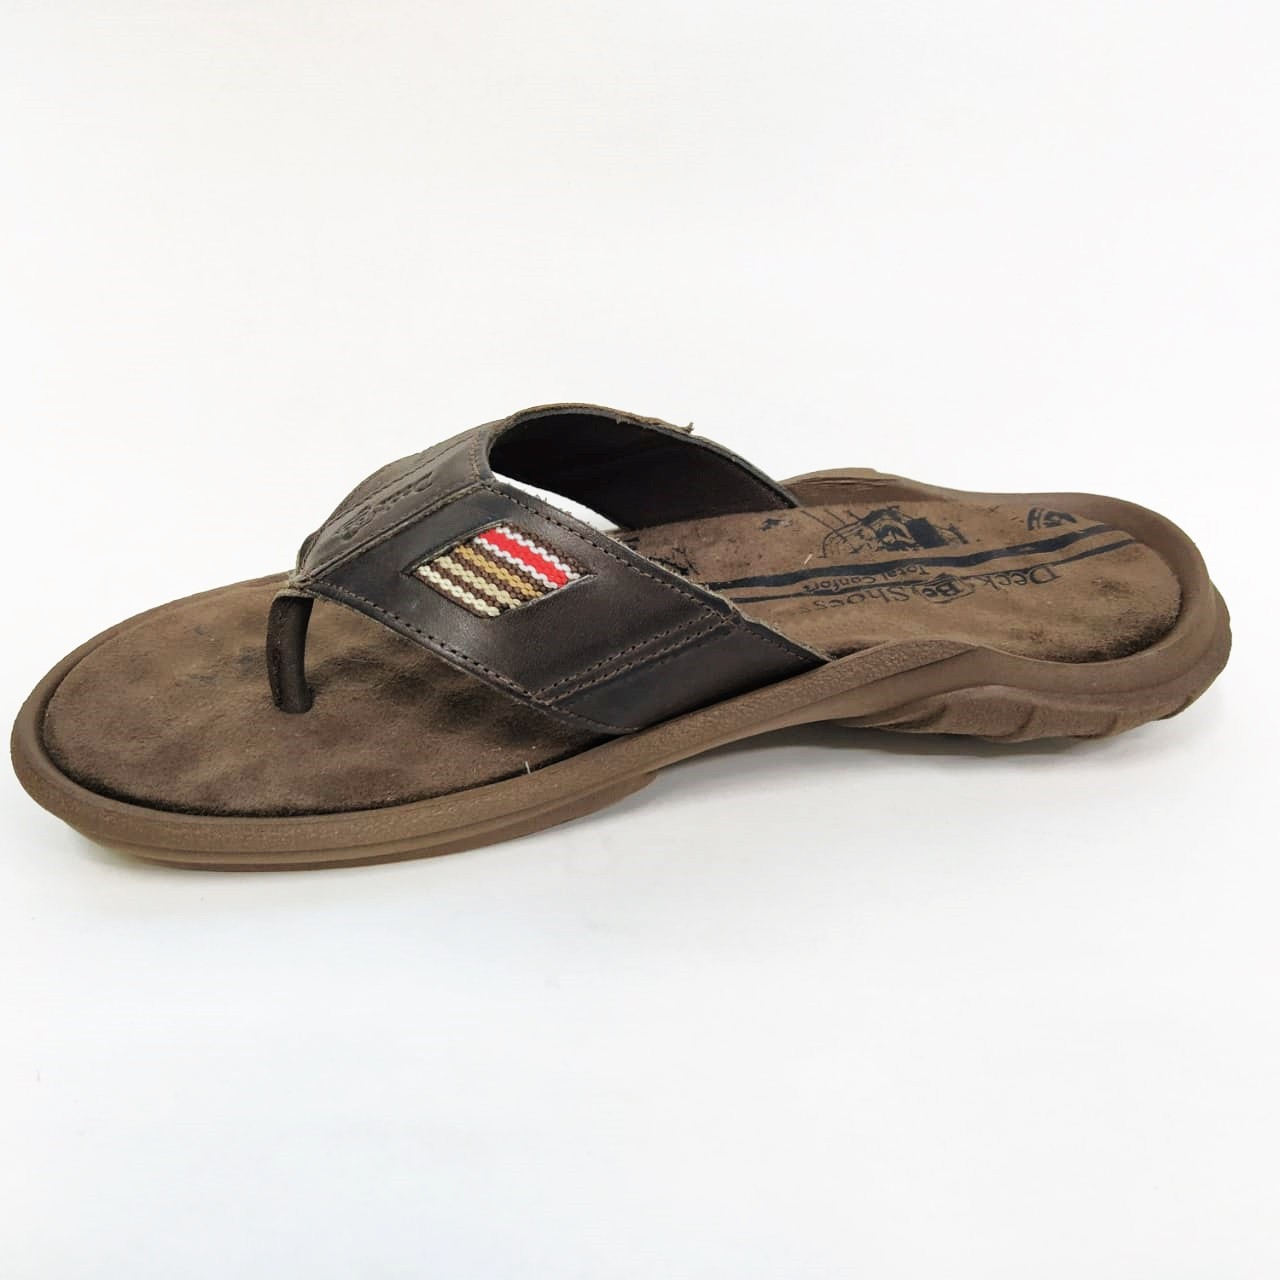 Chinelo masculino Deck Be Shoes 100 - Chocolate